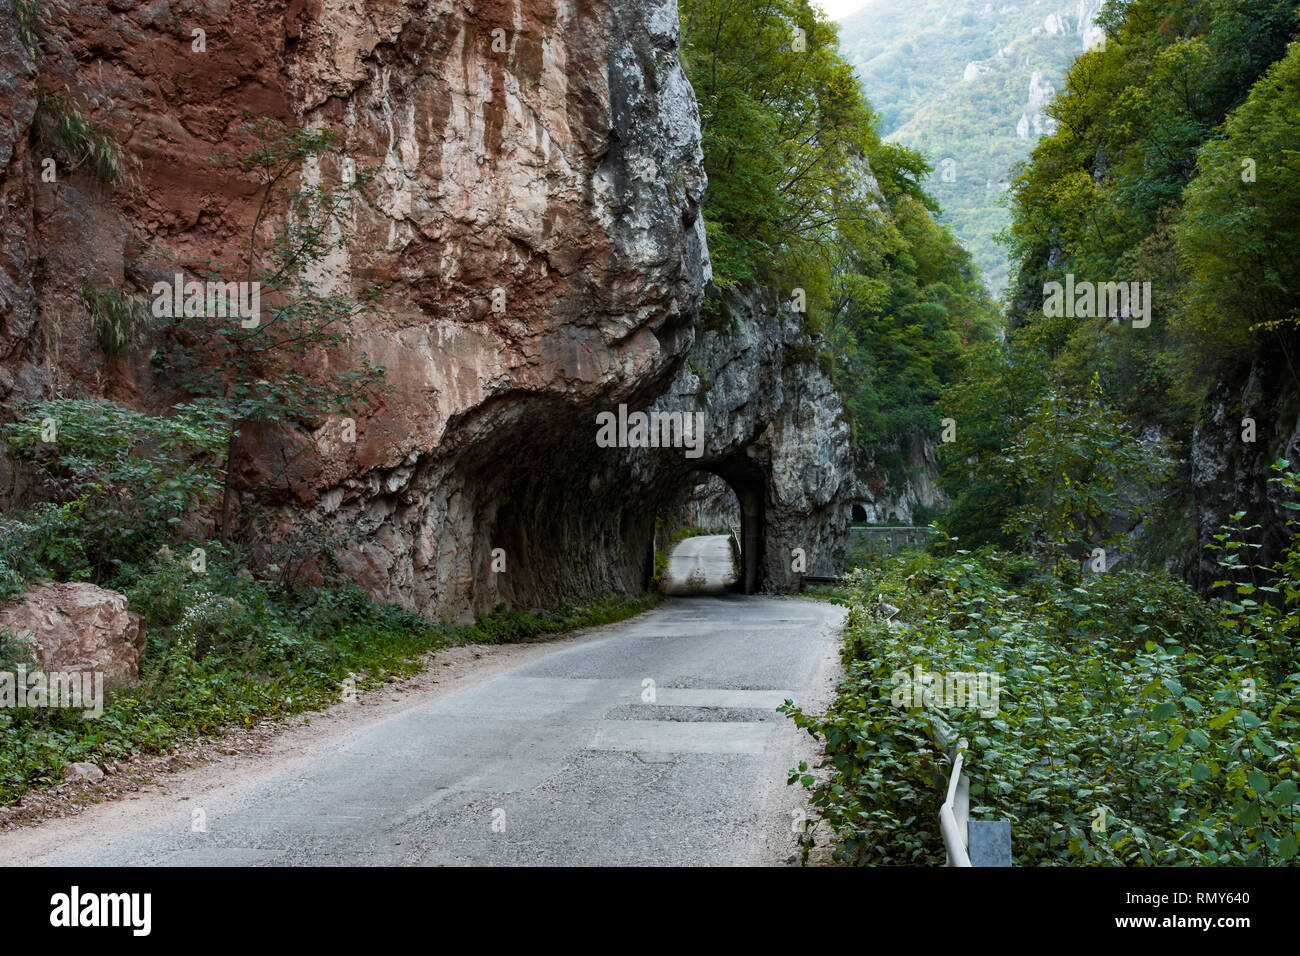 Jerma River canyon with surrounding cliffs over 200m high, extremely dangerous road, along the edge of the gorge, many sharp curves. - Stock Image